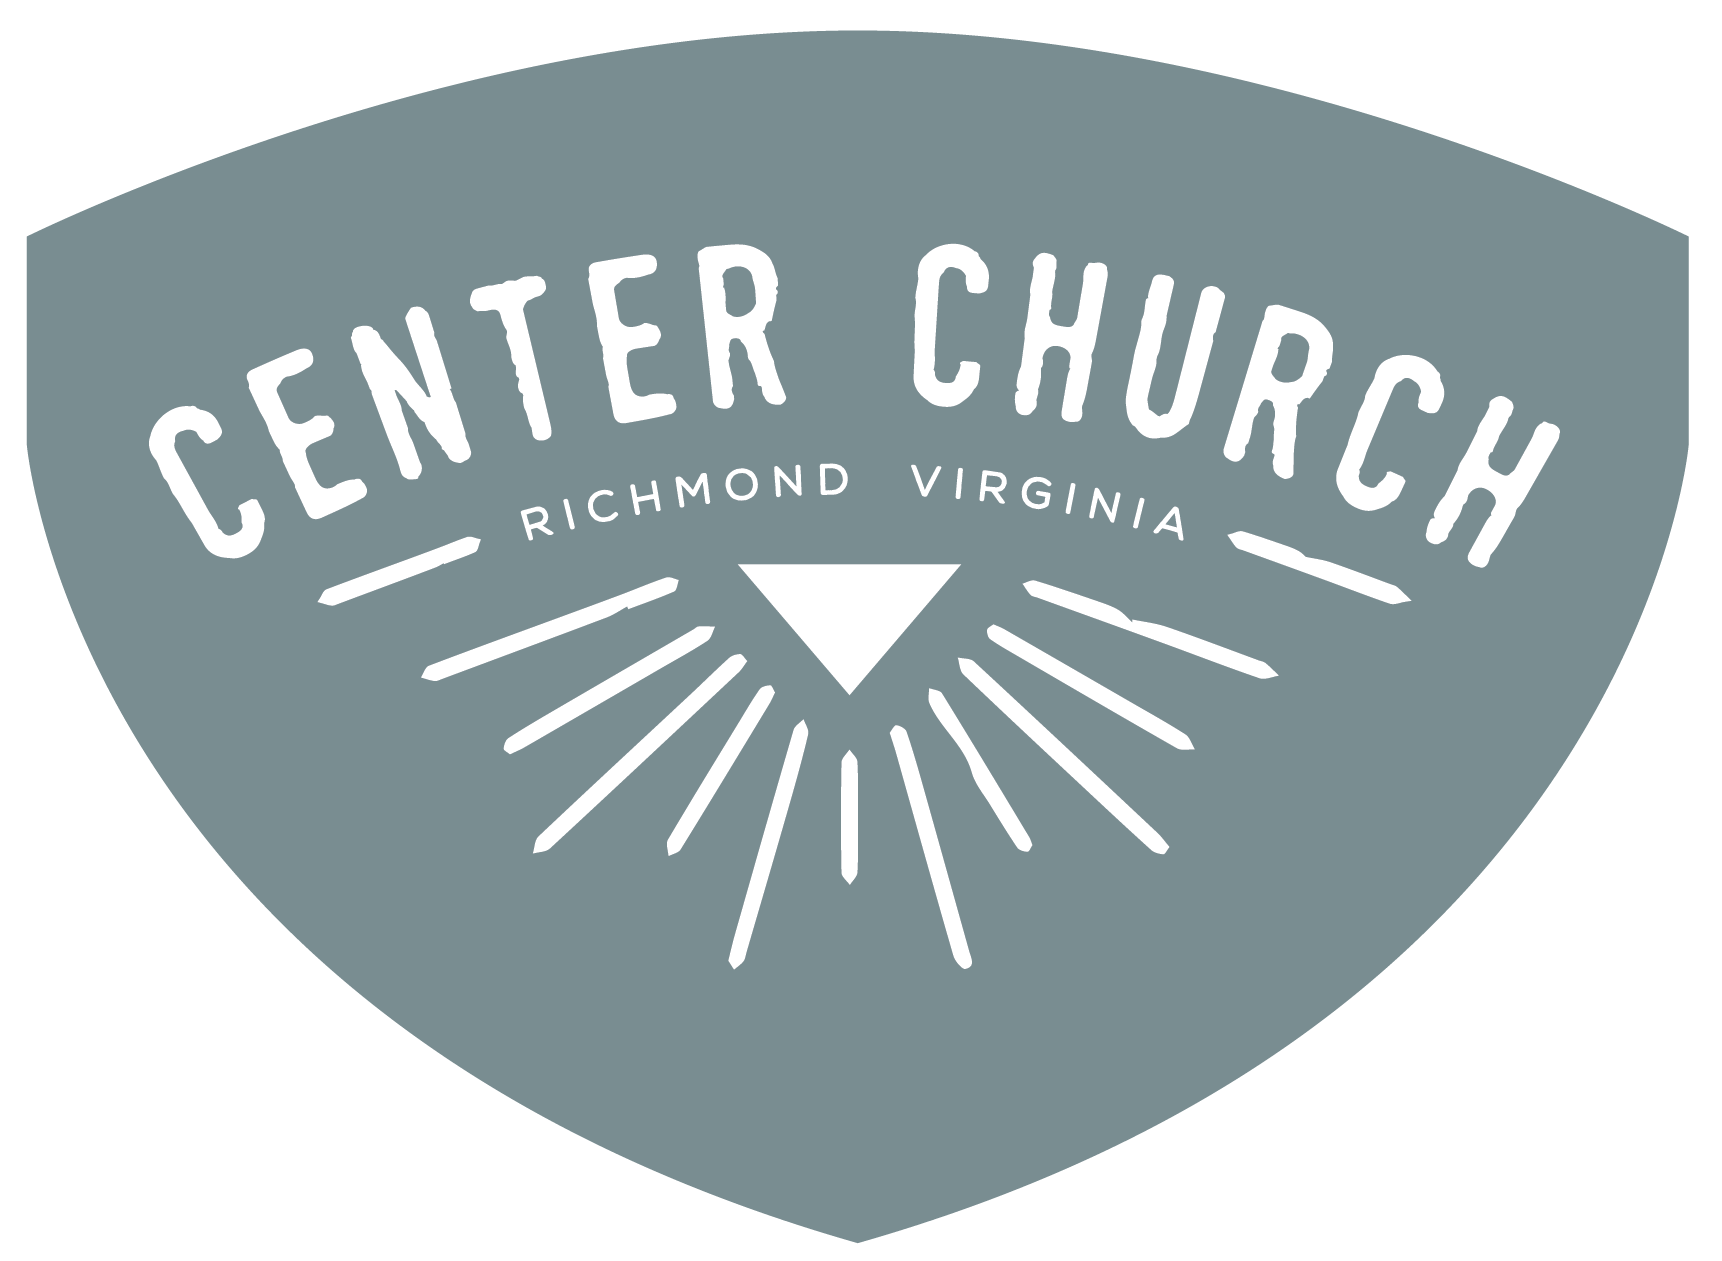 Center Church Richmond